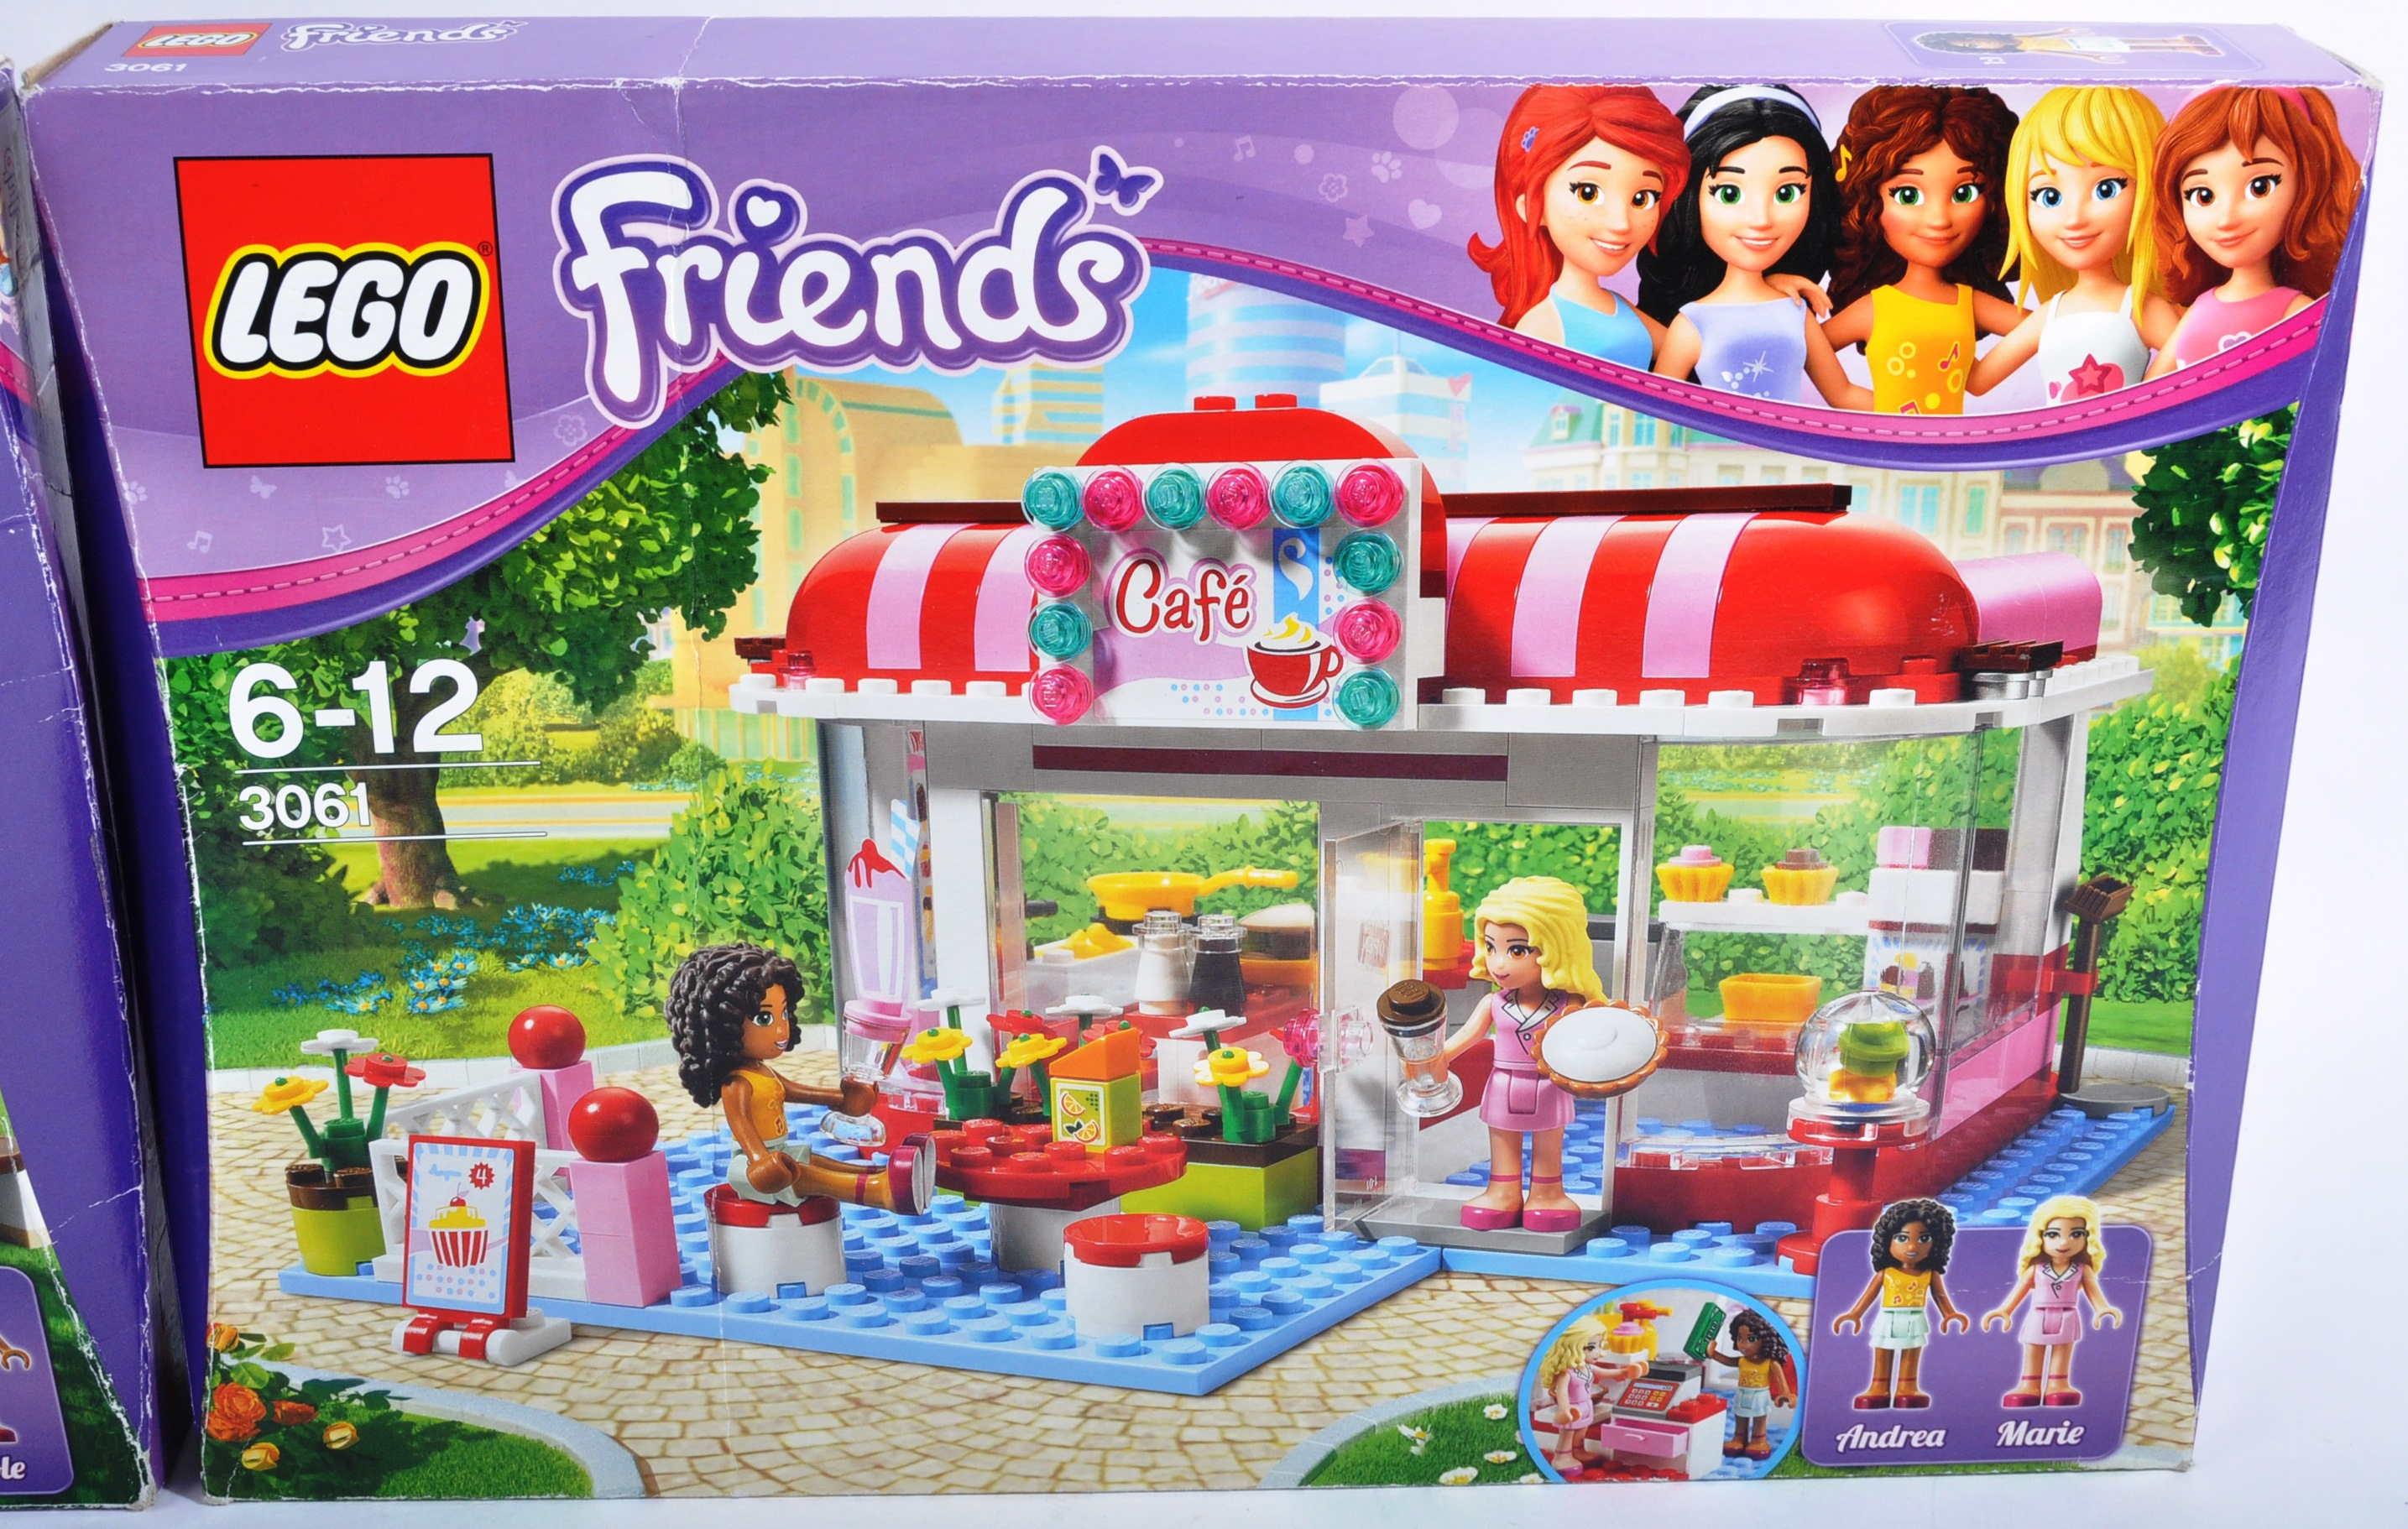 LEGO SETS - LEGO FRIENDS - COLLECTION OF X5 LEGO FRIENDS SETS - Image 6 of 6